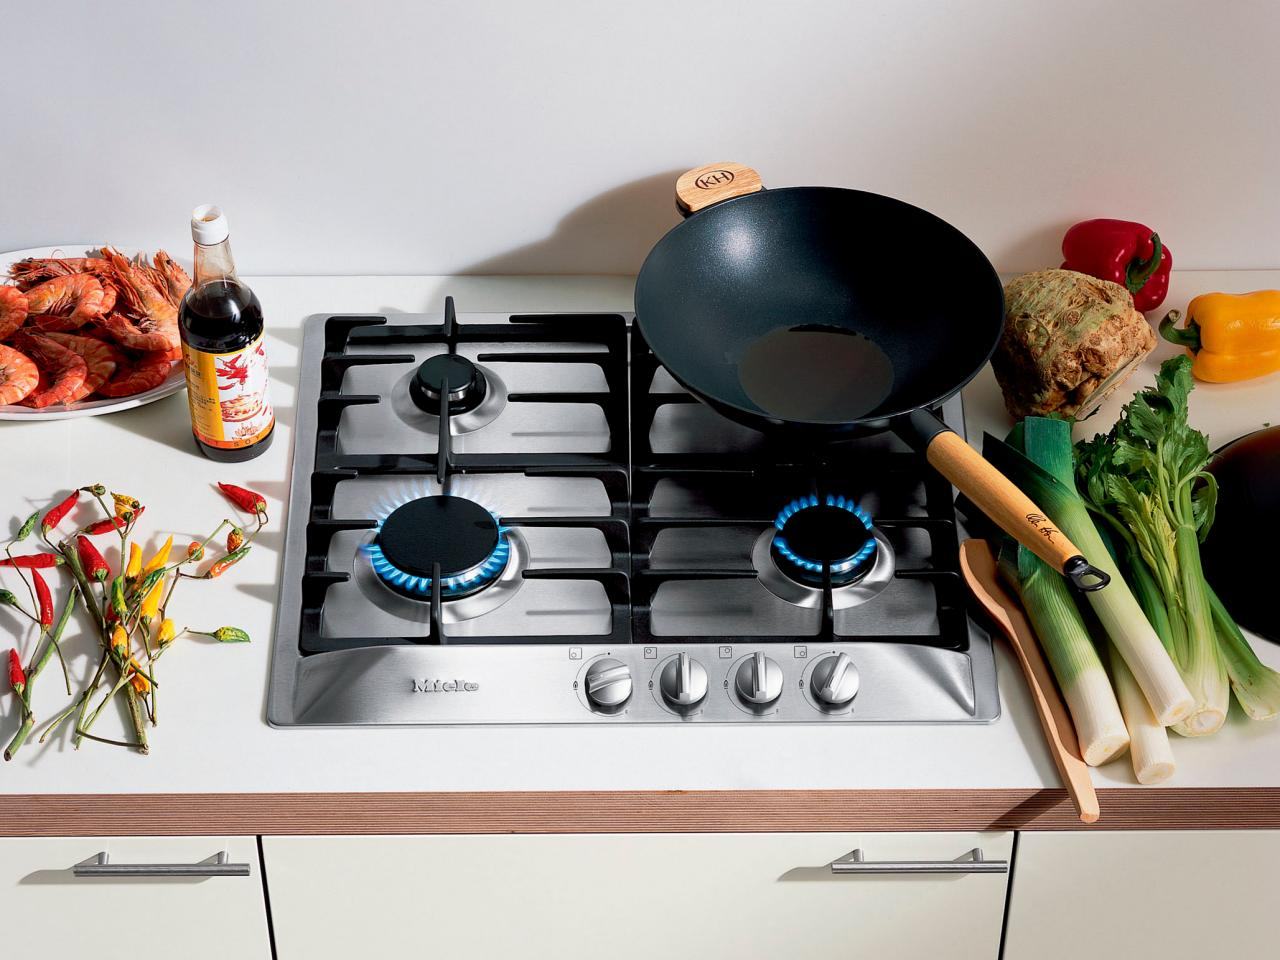 design-of-the-induction-cooktop